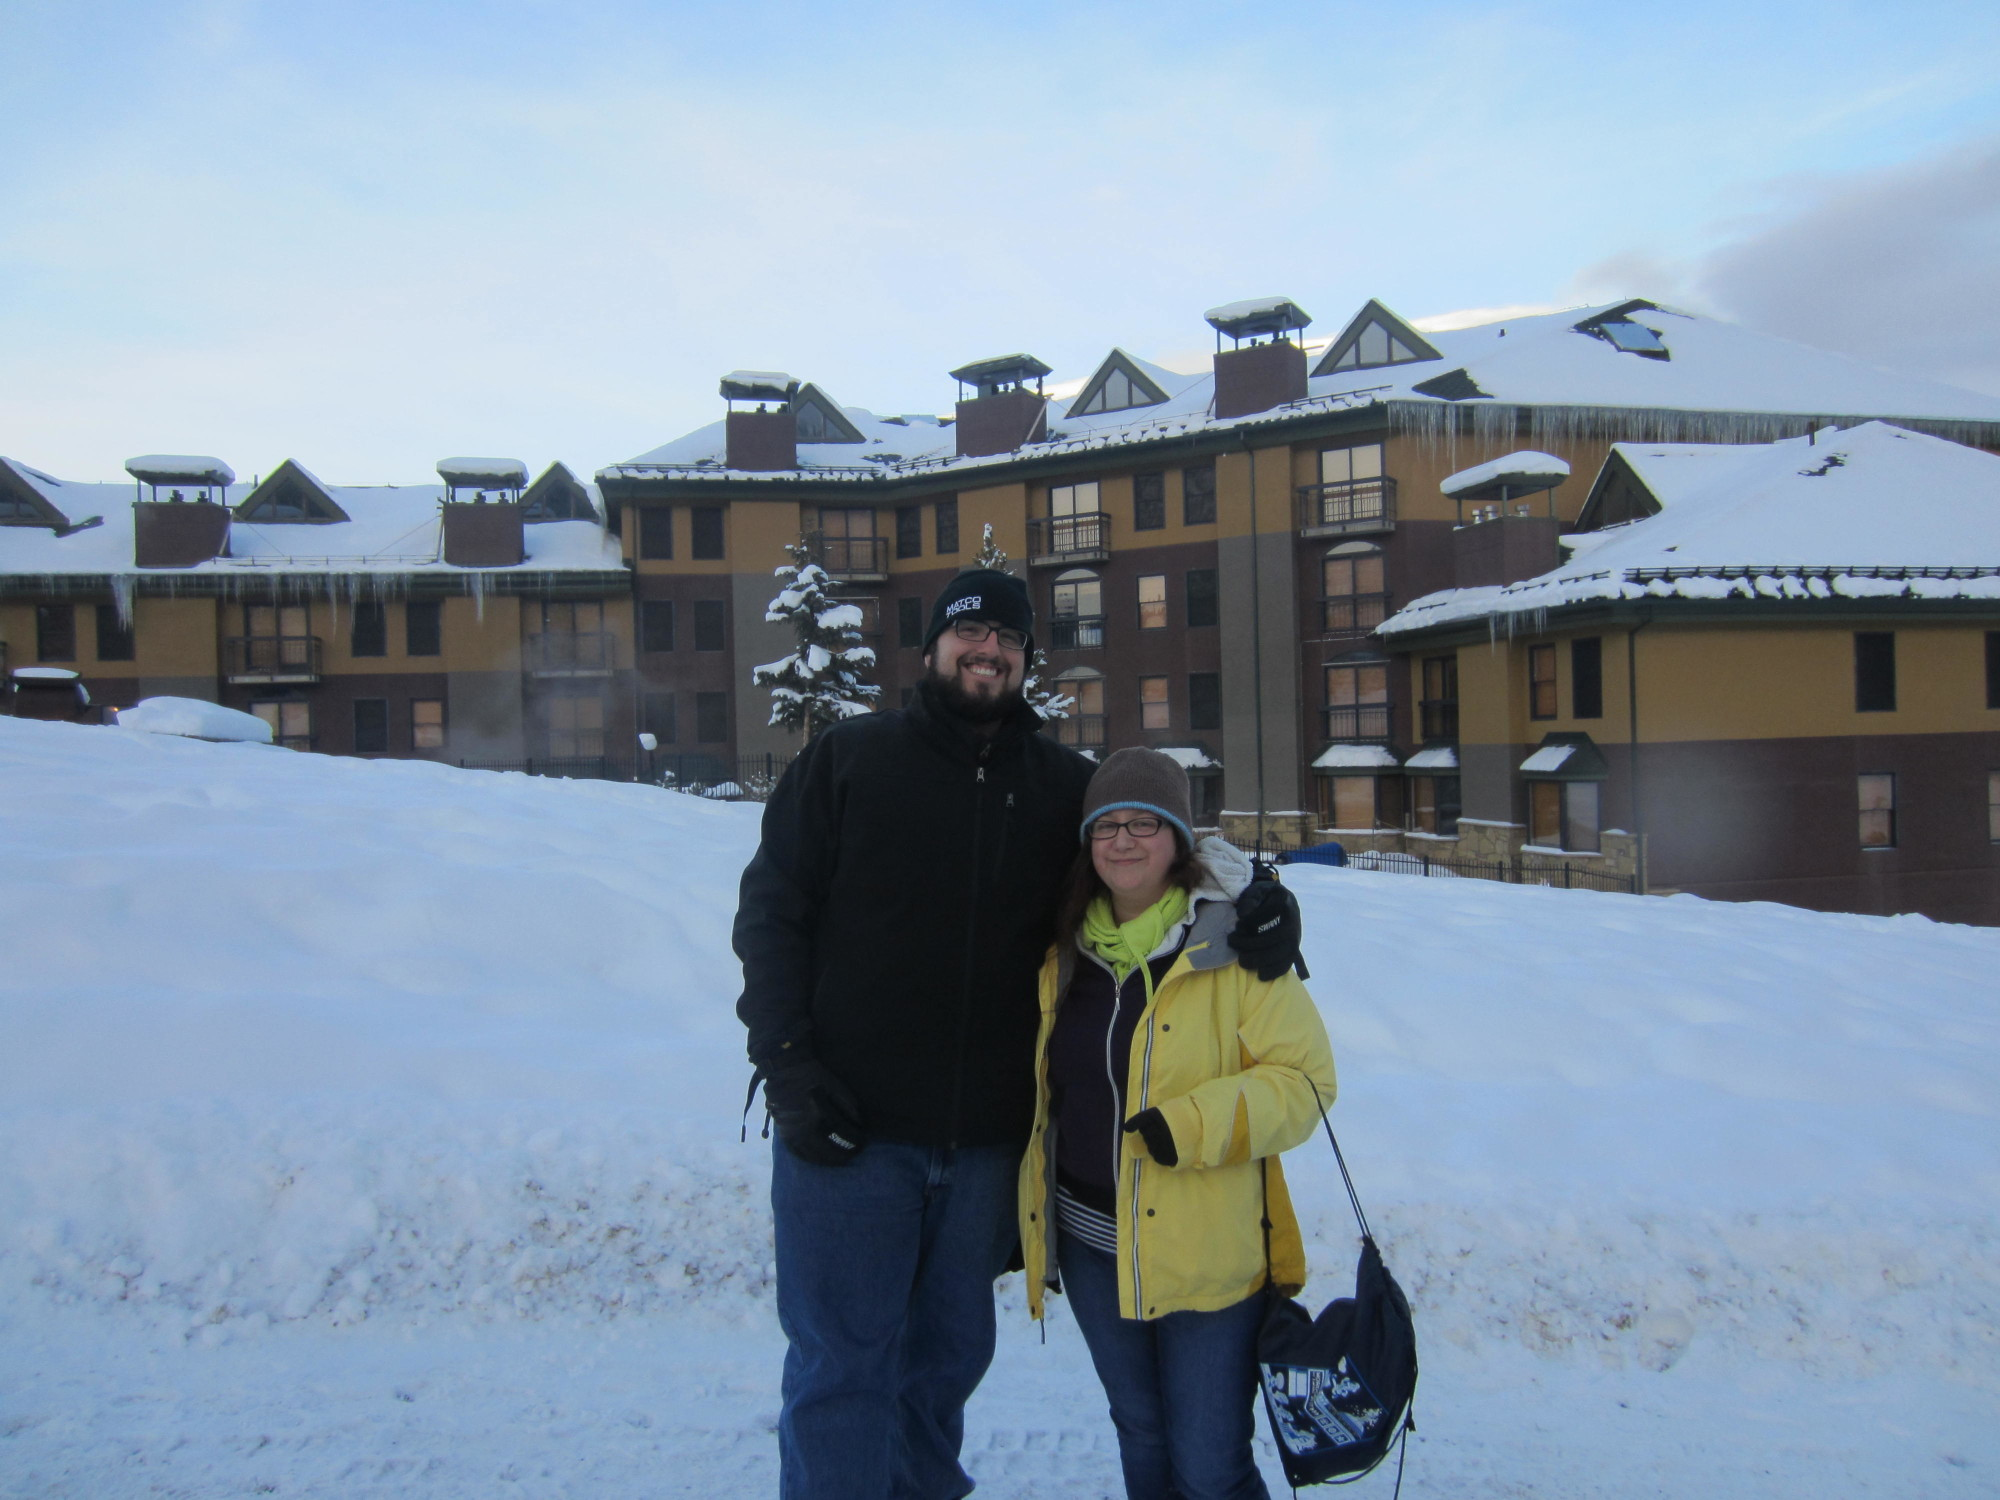 Mandy and I after in front of a gorgeous little condo/hotel in the town.